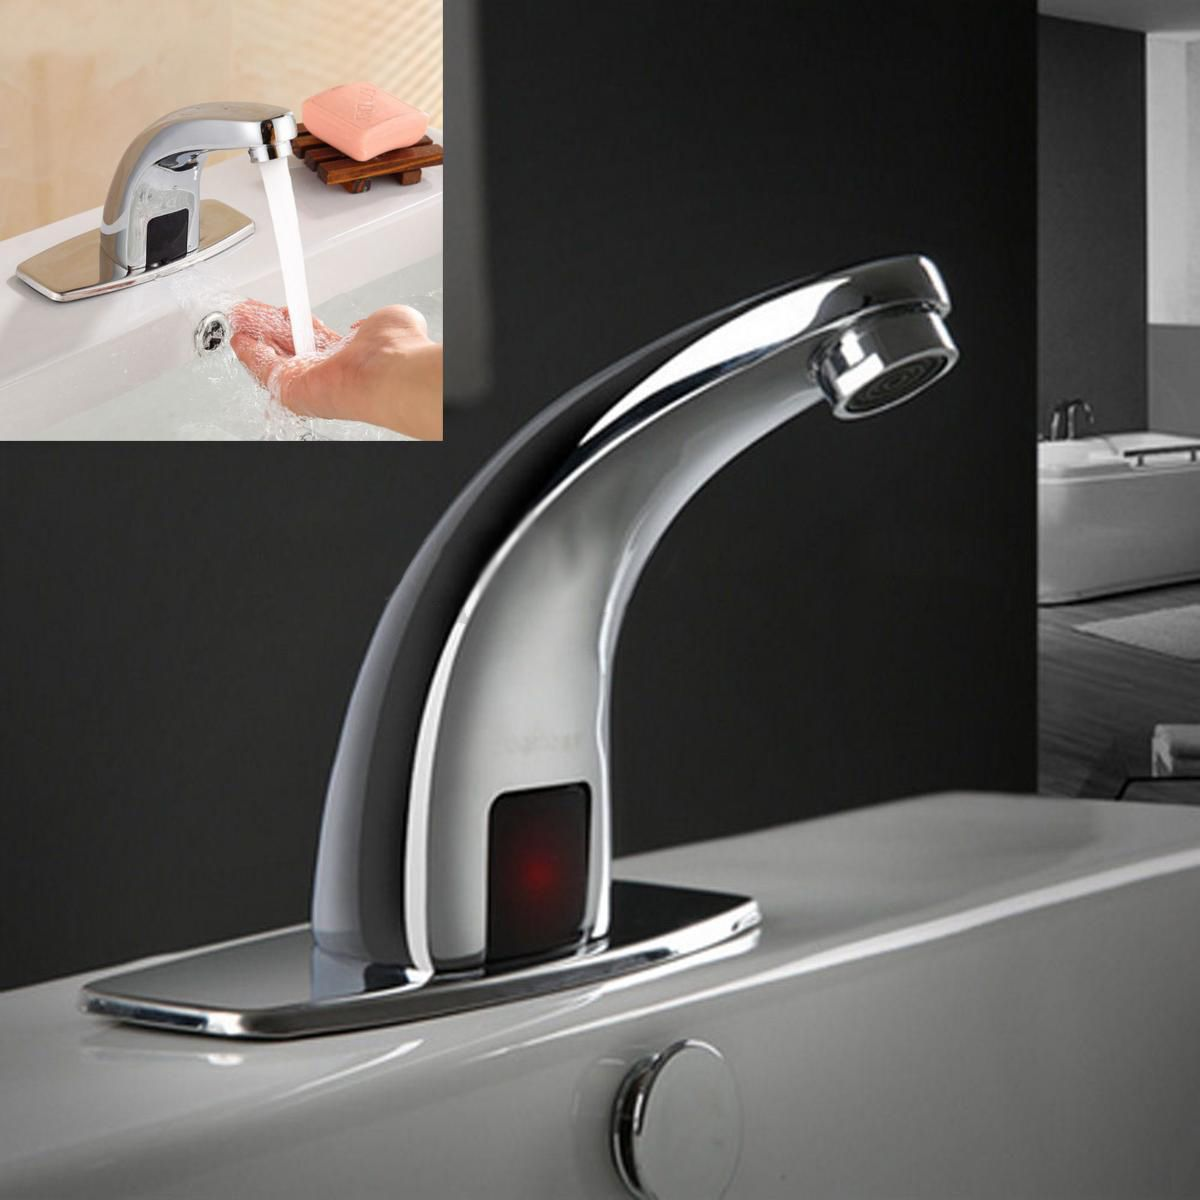 Buy sensor water faucet and get free shipping on AliExpress.com